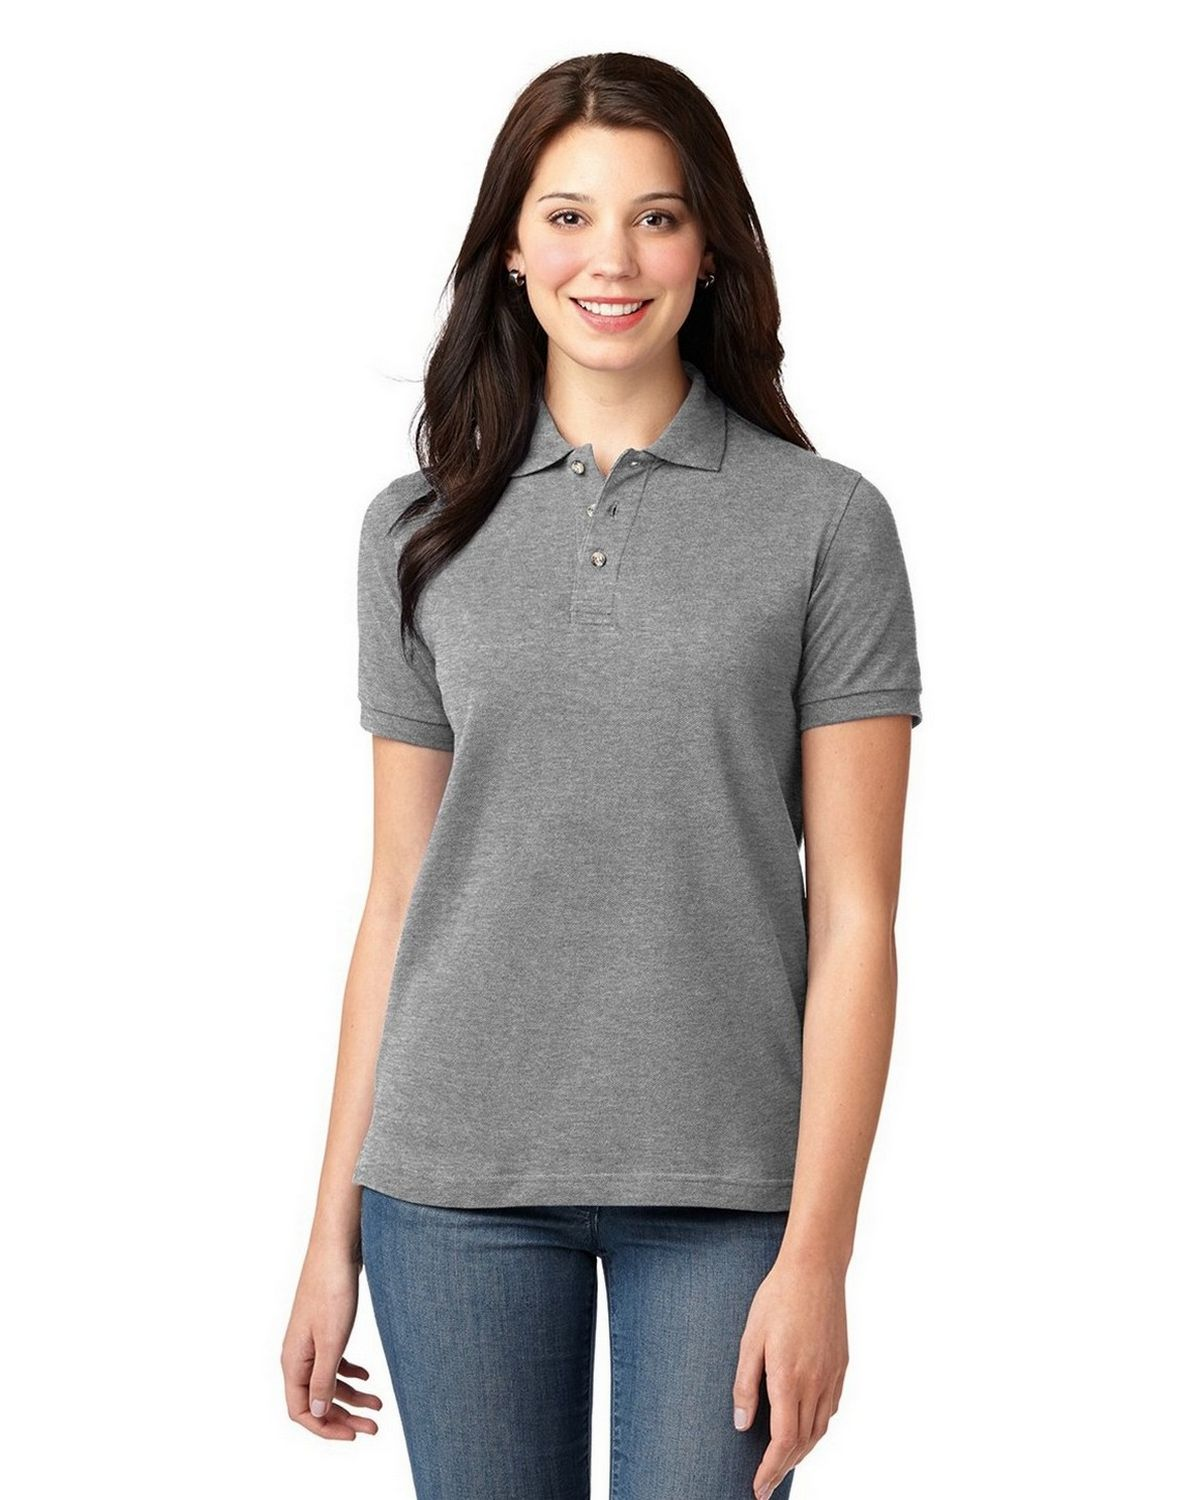 Port Authority L420 Womens Pique Knit Polo - Oxford - XS